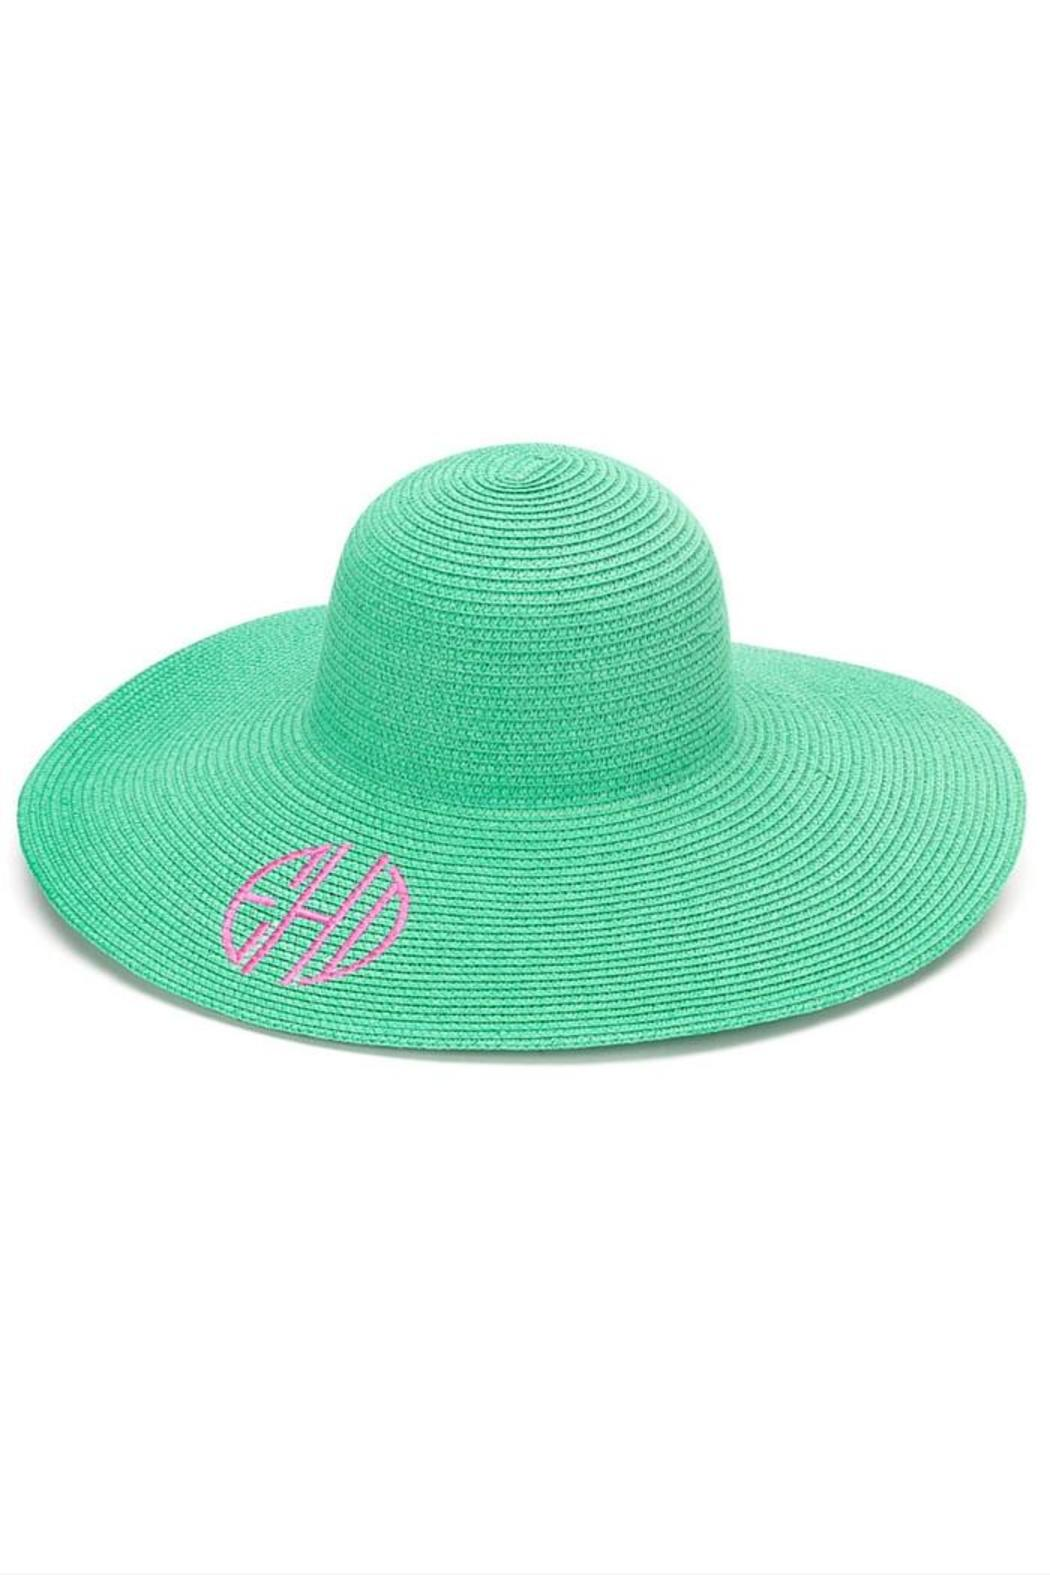 Wholesale Boutique Monogrammed Floppy Hat from Richmond by Trend ... 8650181726e